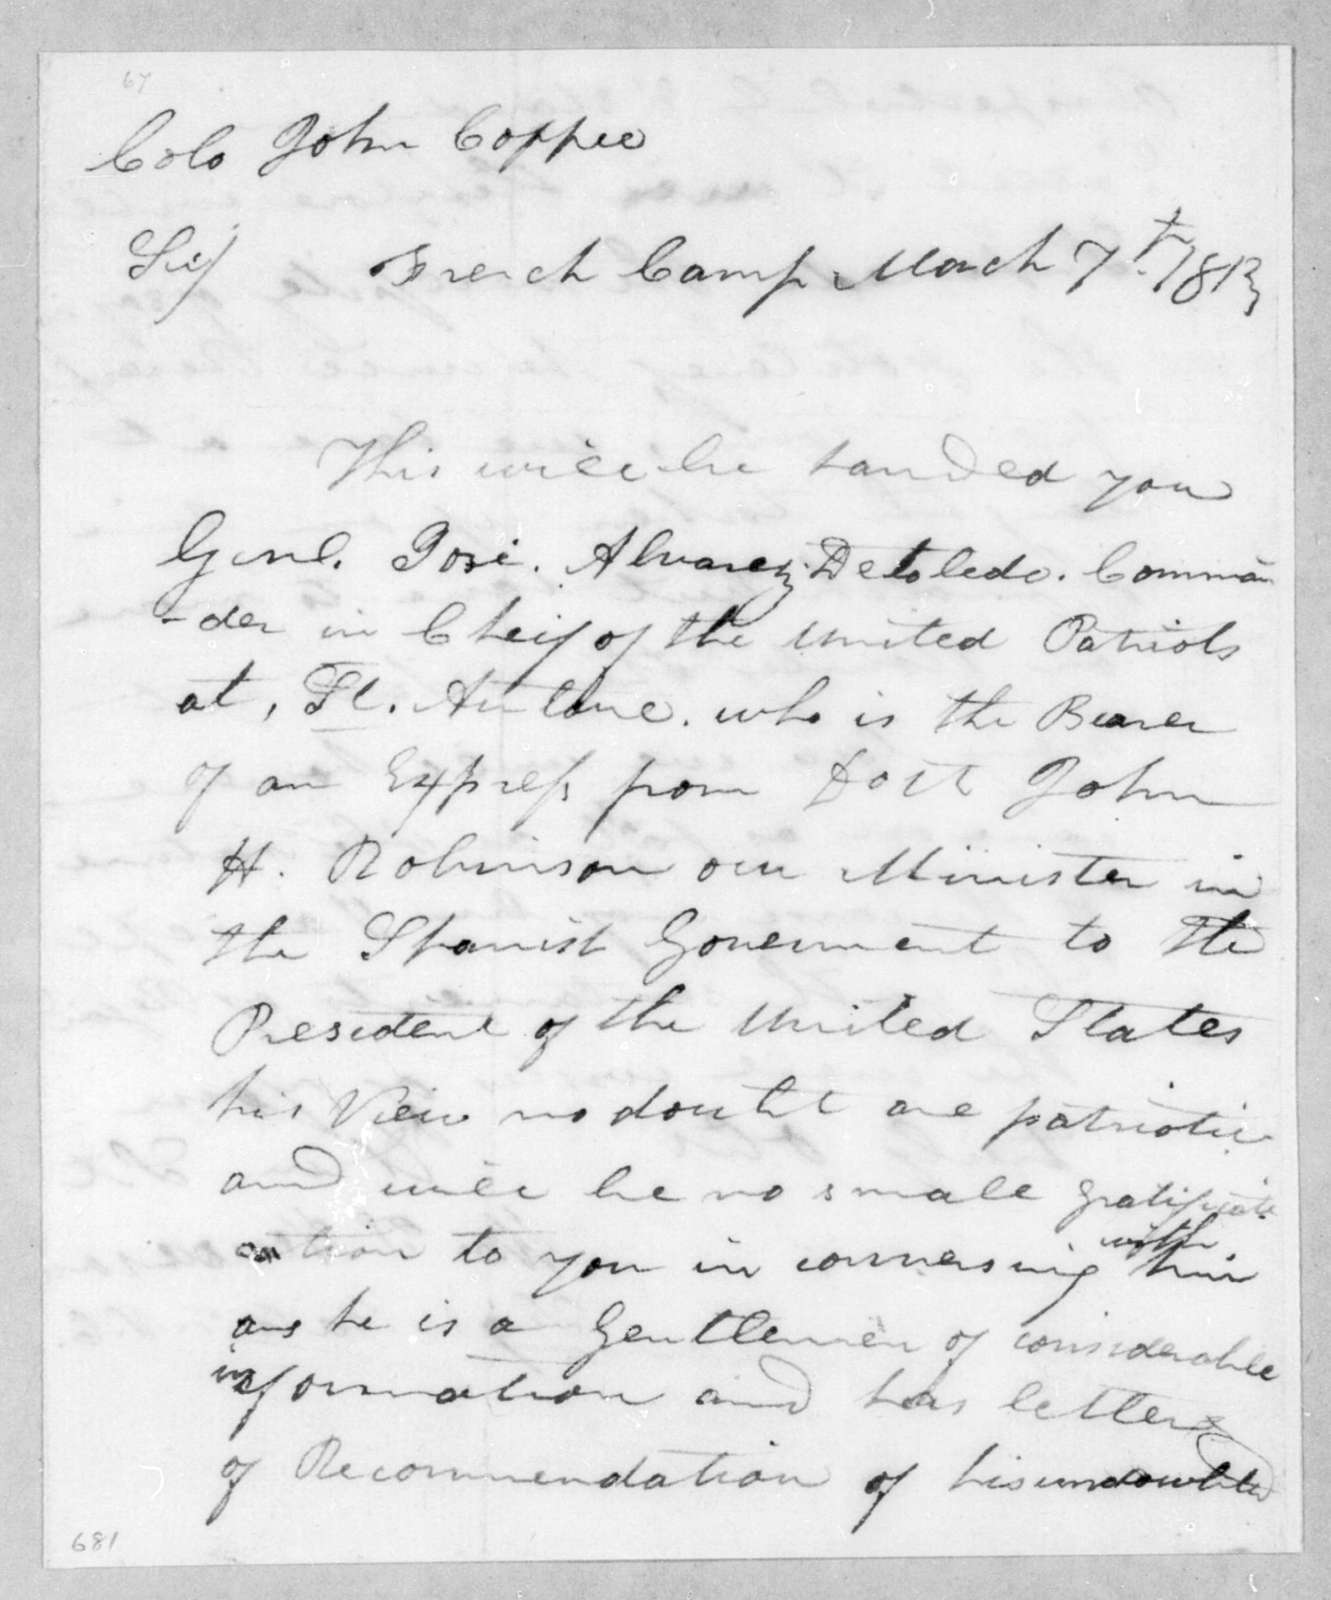 William T. Henderson to John Coffee, March 7, 1813